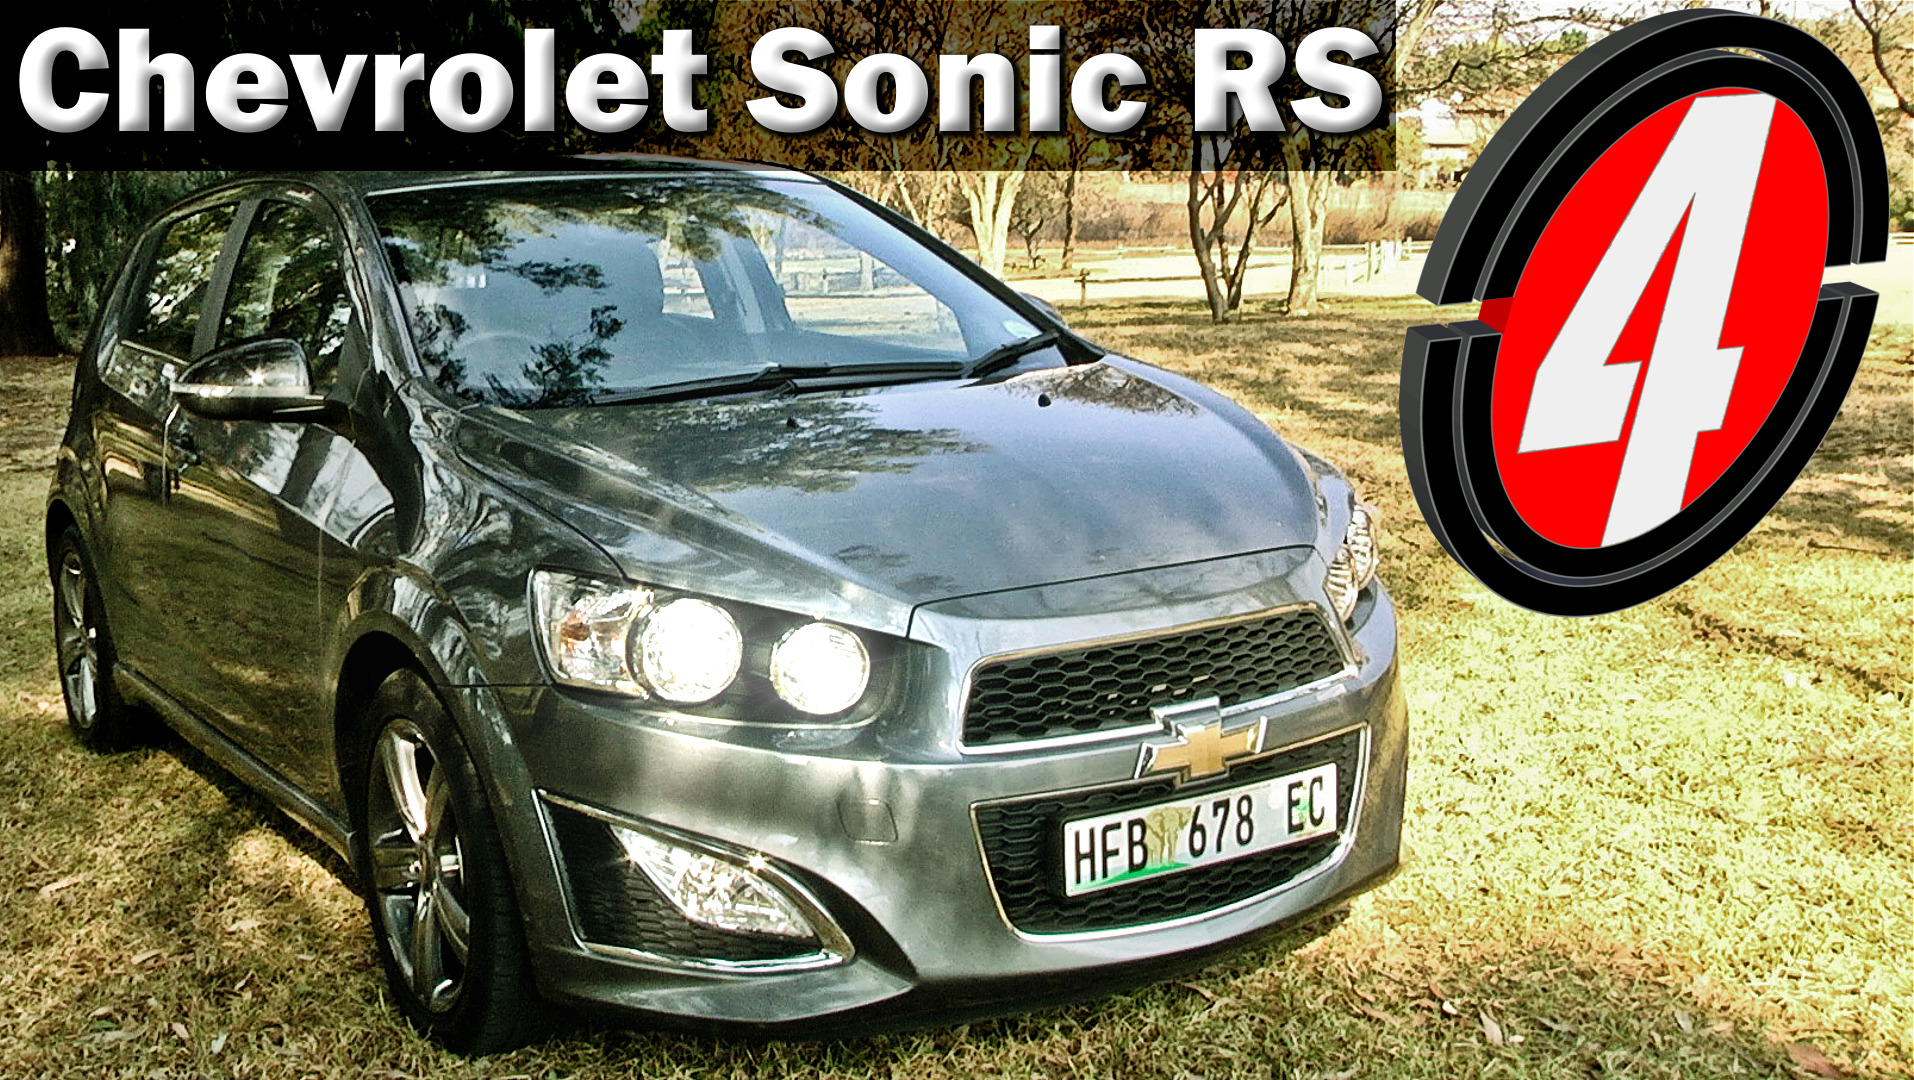 Chevrolet Sonic RS (2014) | New Car Review